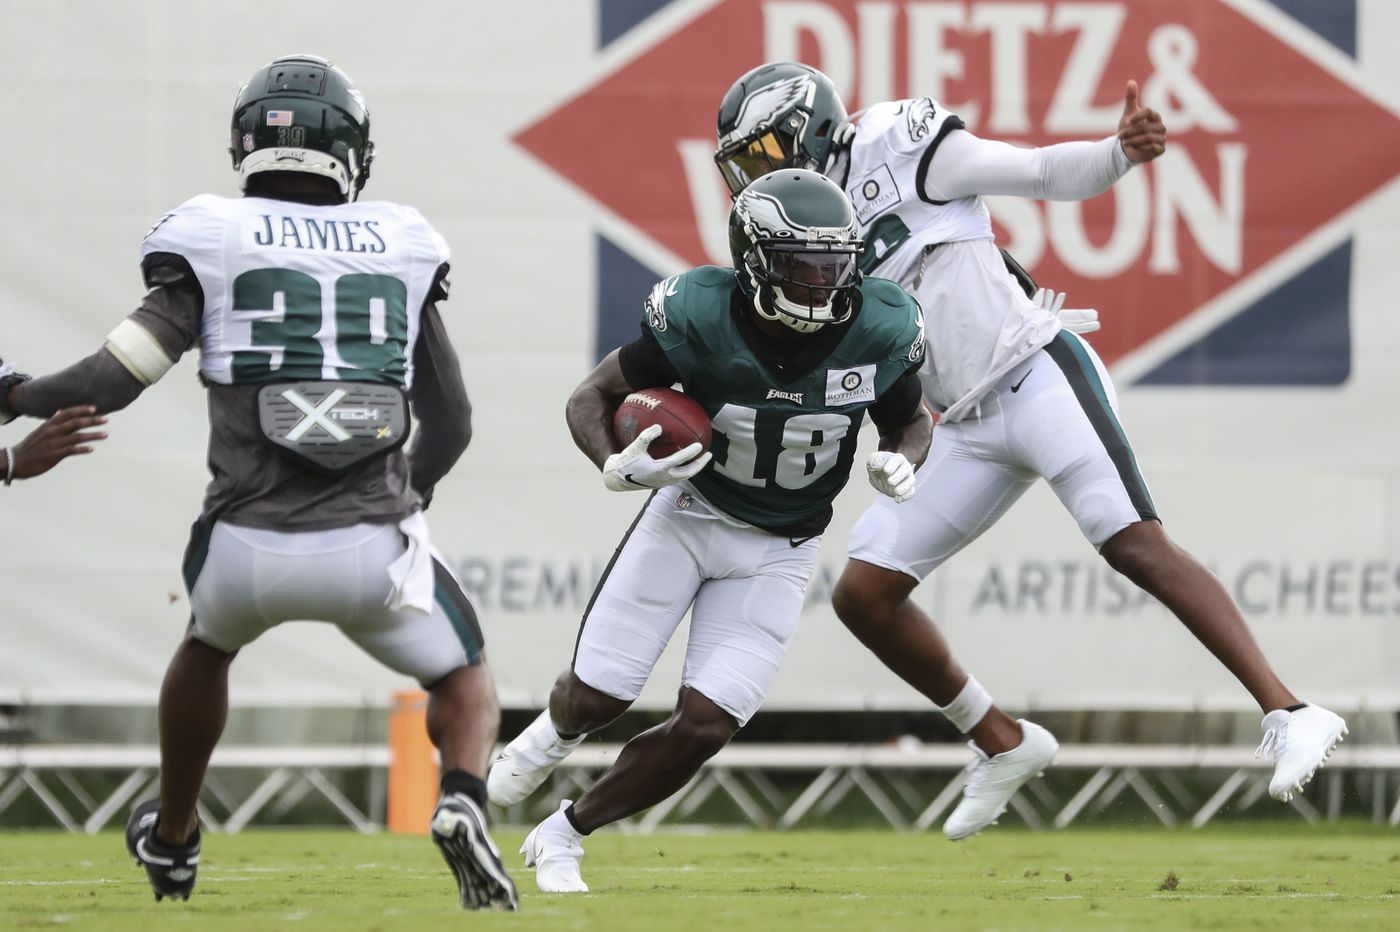 Doug Pederson indicates Jalen Reagor will play, while others are still uncertain ahead of Friday's practice